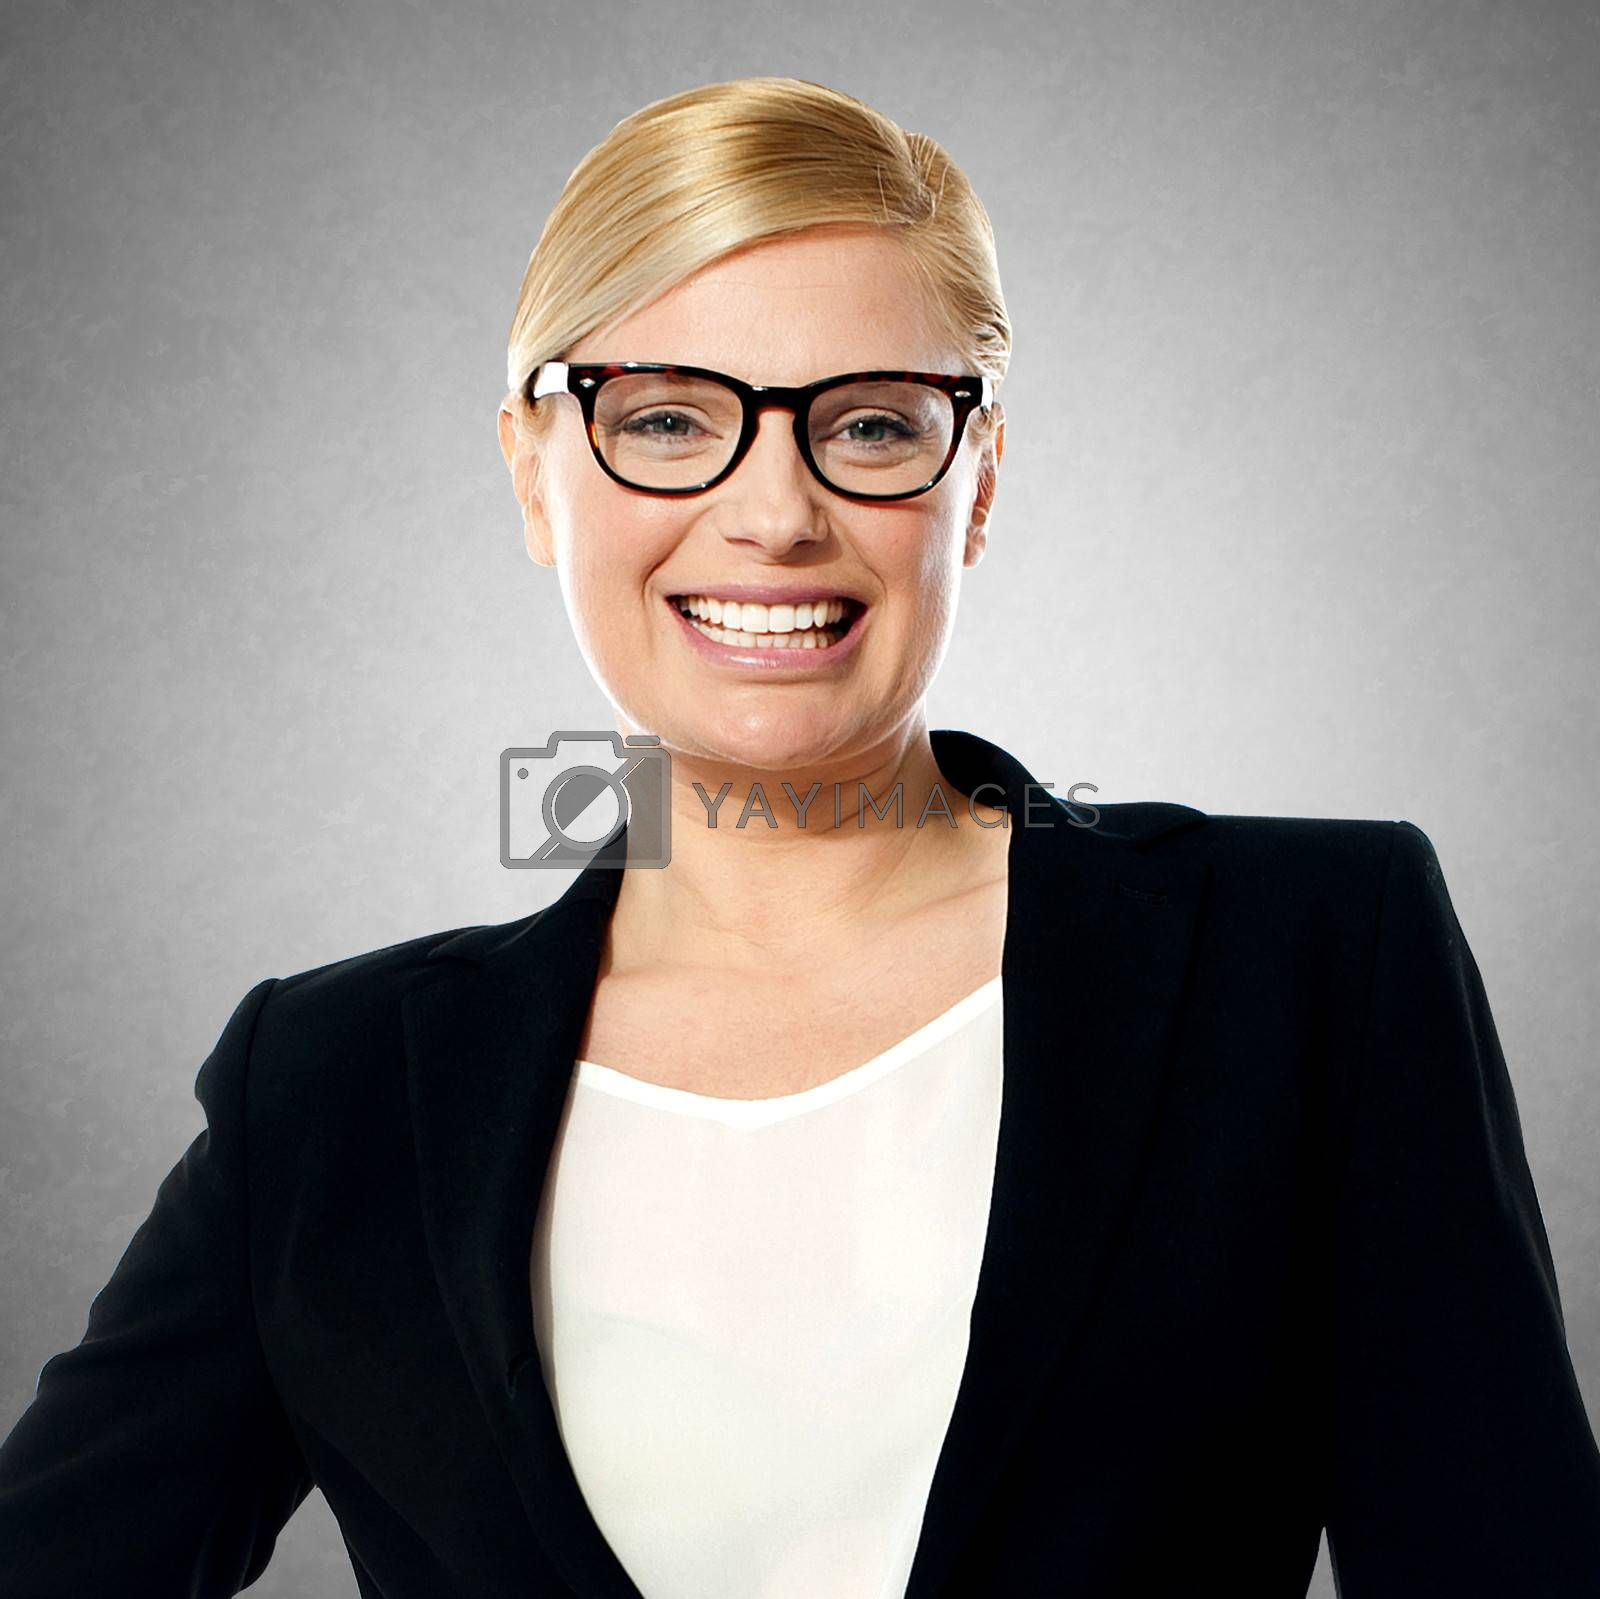 Young beautiful smiling corporate woman